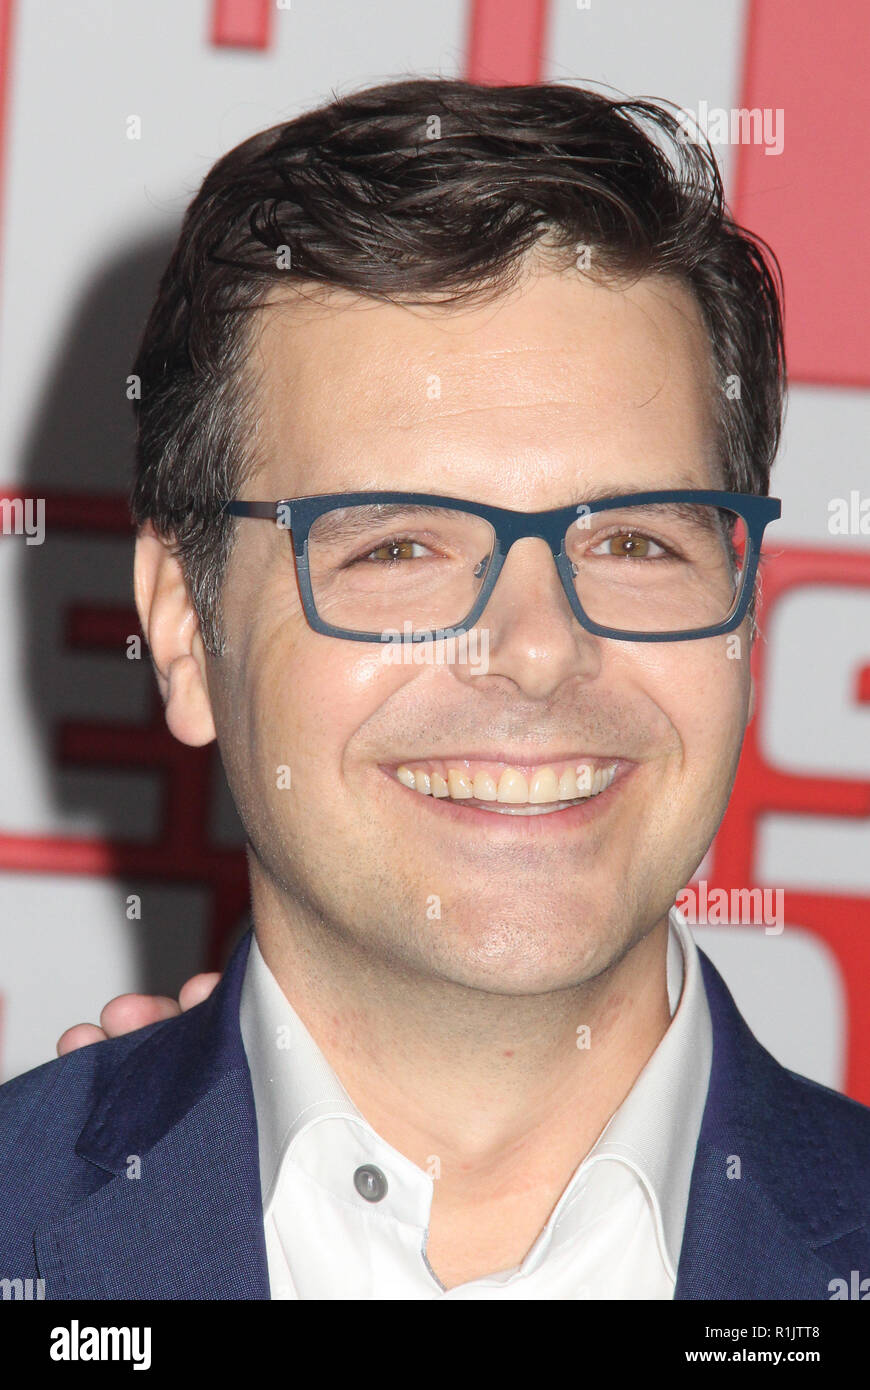 Phil Johnston  11/05/2018 The World Premiere of 'Ralph Breaks the Internet' held at El Capitan Theatre in Los Angeles, CA   Photo: Cronos/Hollywood News - Stock Image